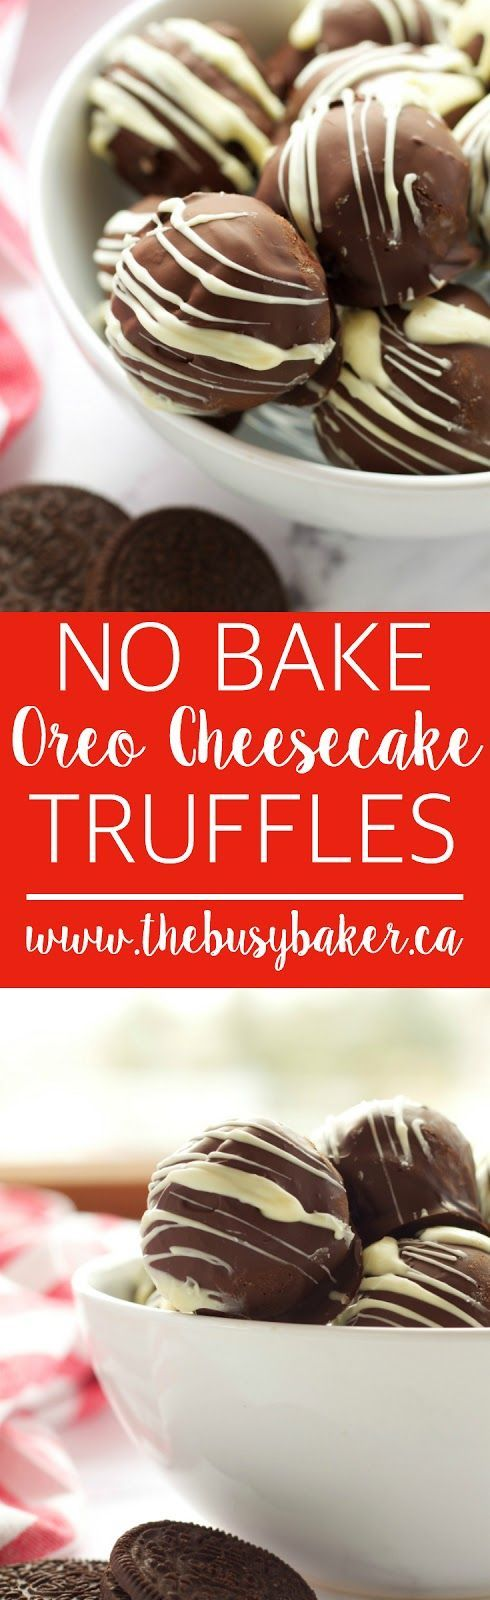 No Bake Oreo Cheesecake Truffles are the perfect holiday recipe! http://www.thebusybaker.ca